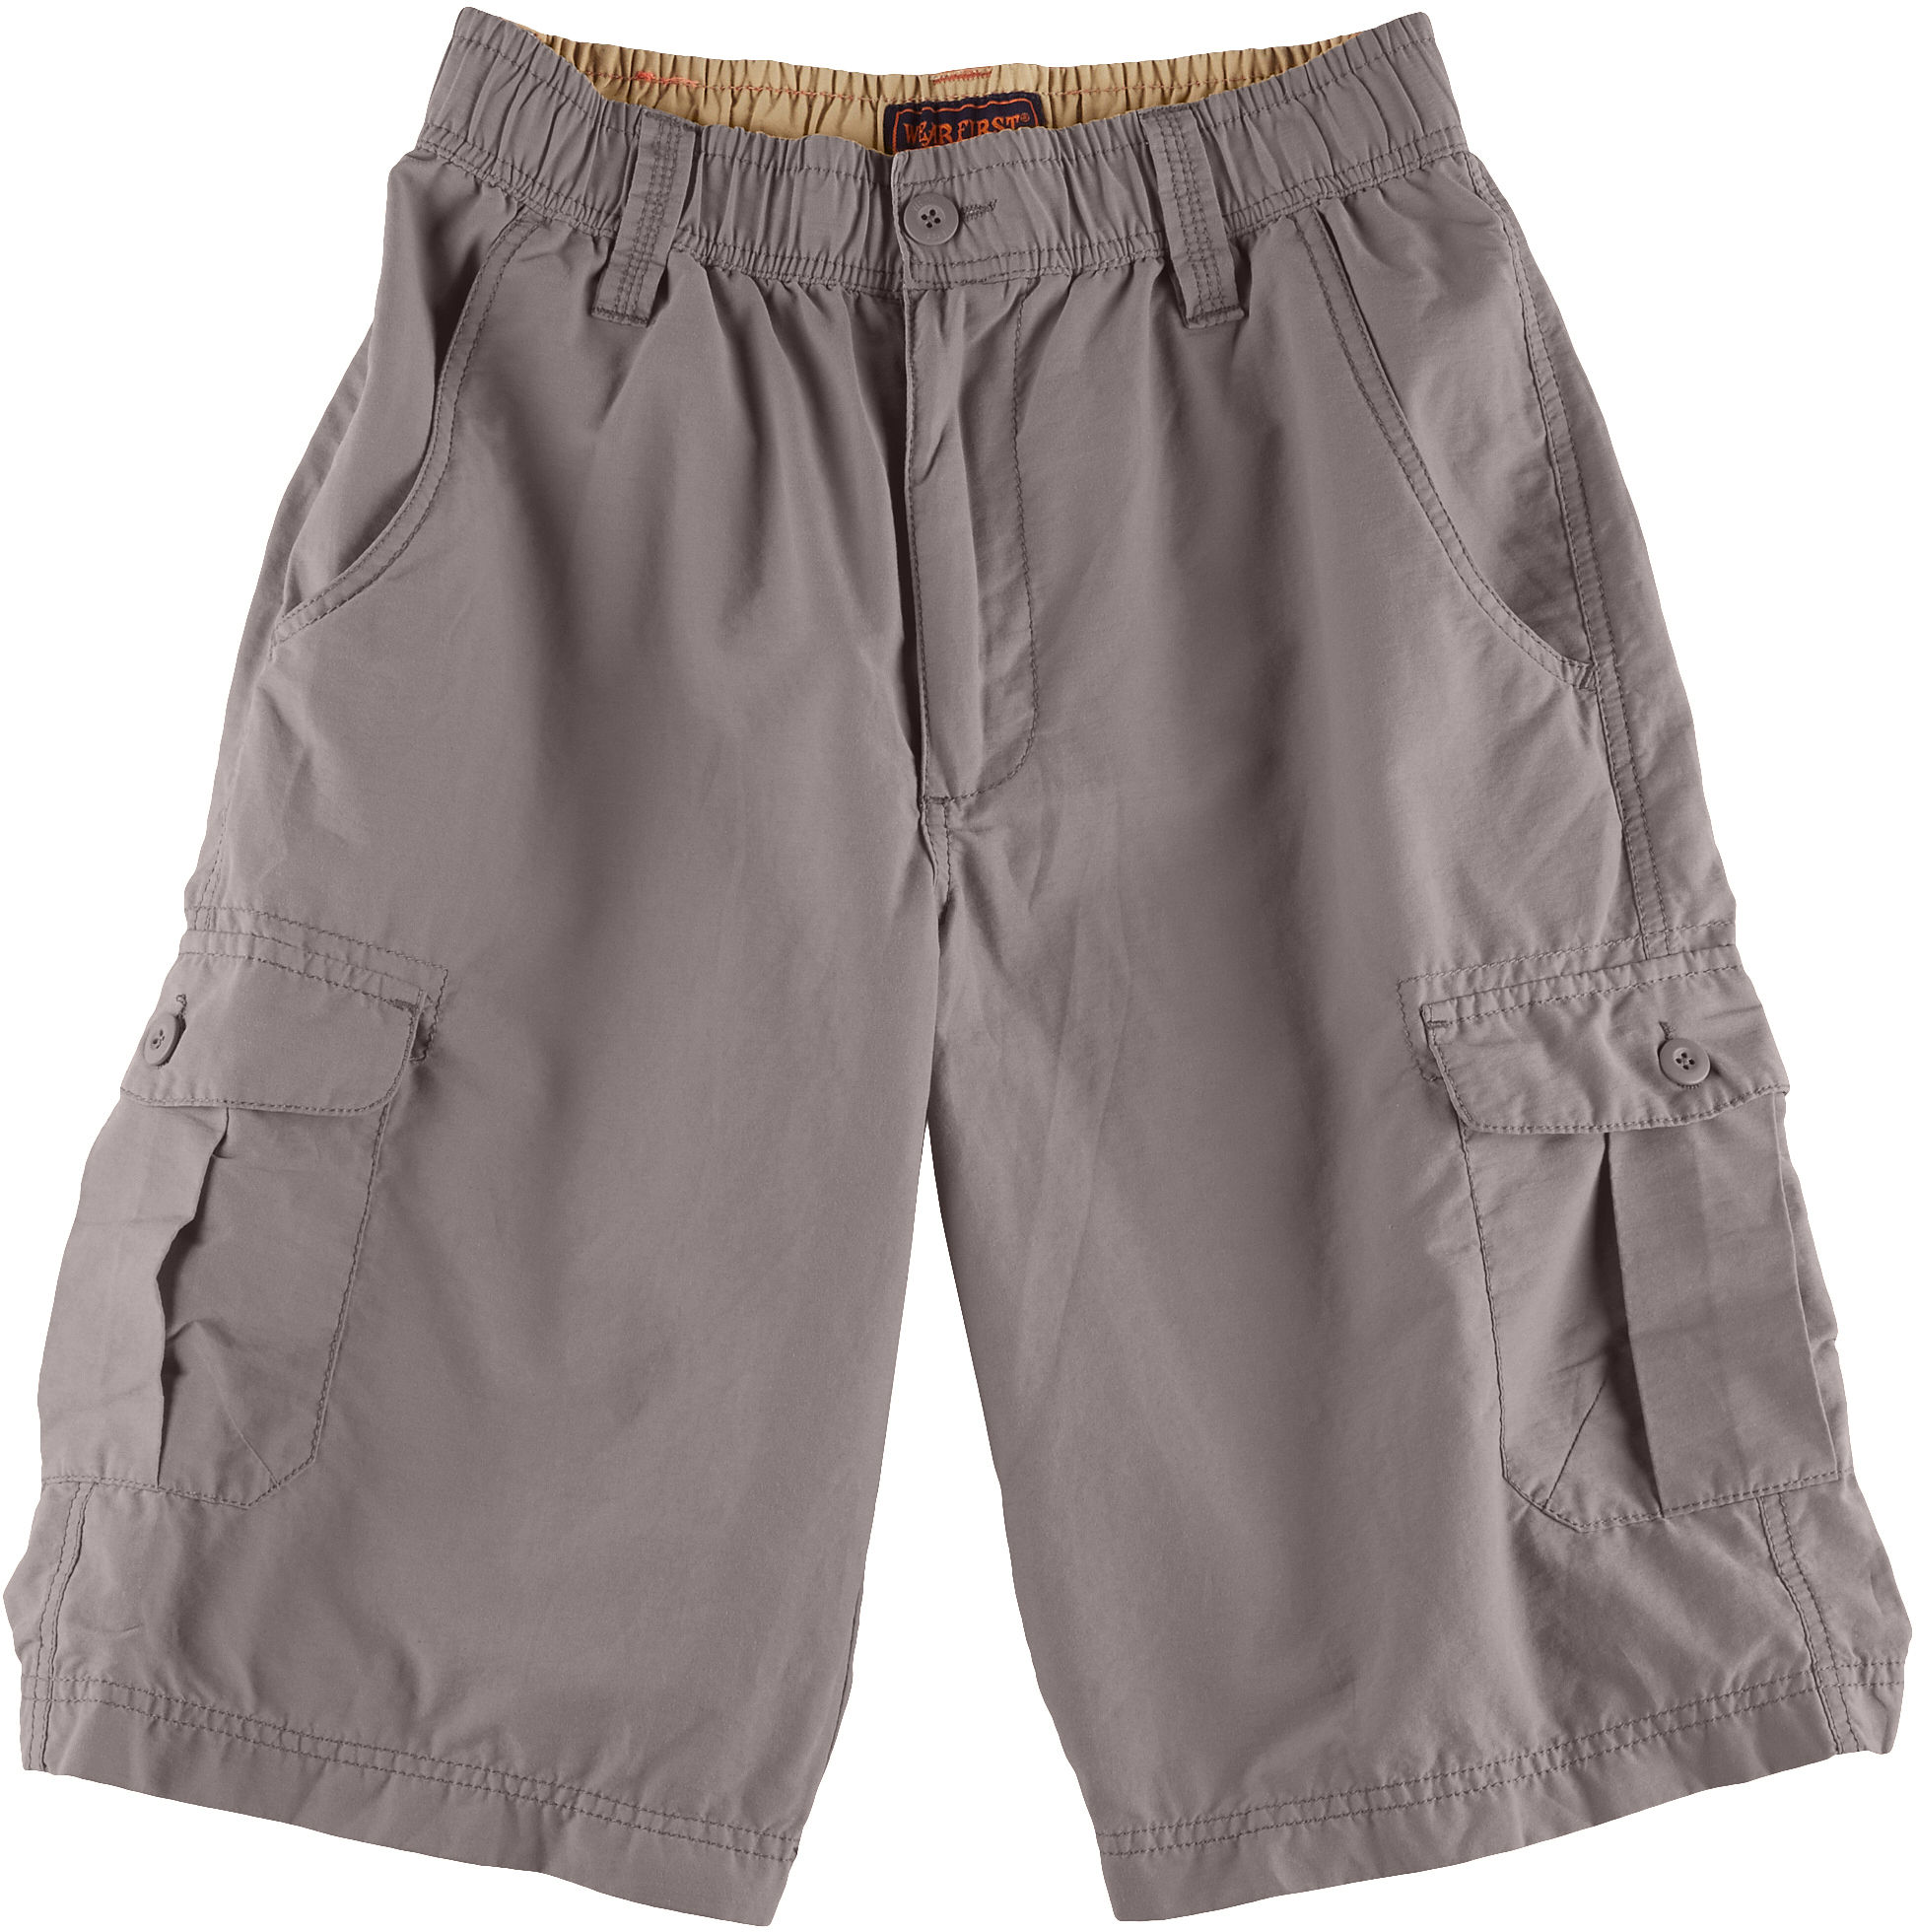 Cargo Shorts for Men are essential for your everyday wardrobe. Kohl's offers many different styles and types of men's cargo shorts, like men's flat front cargo shorts, men's Dickies cargo shorts, and big & tall cargo shorts.